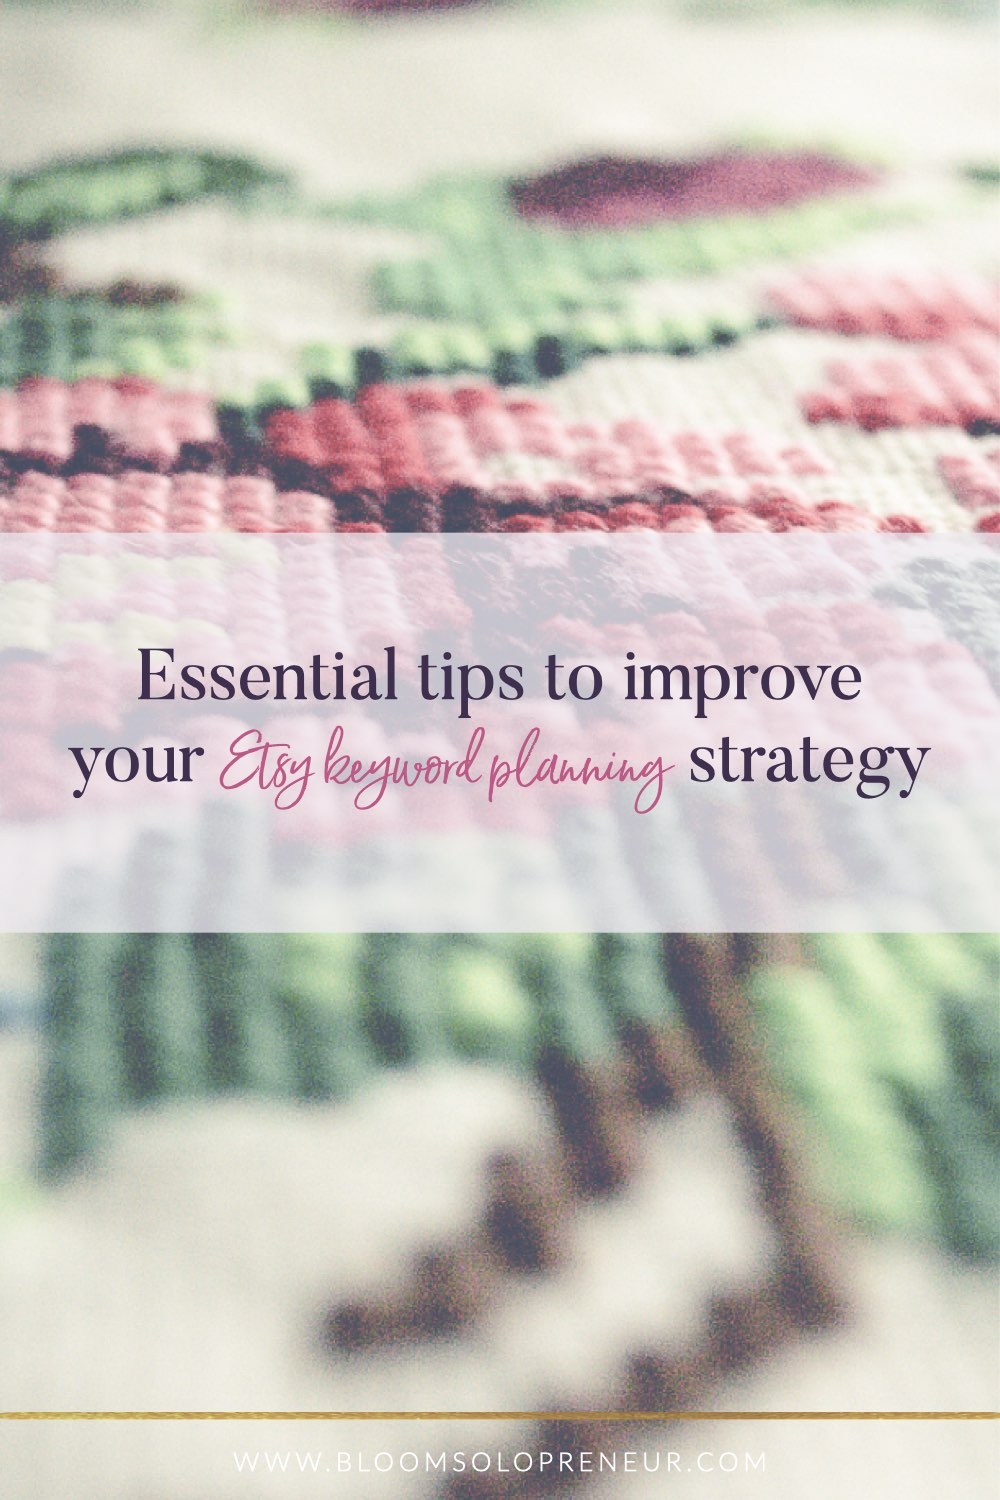 Here are some essential tips to improve your Etsy SEO keyword planning and keyword research strategy to help improve your keyword planning Etsy SEO strategy and keyword research. Using keyword planner tools that I have discovered. If you are unsure of what SEO and keywords mean. Researching the keywords you use is essential if you want to take advantage of all the people already using Etsy searching for products. #bloomsolopreneur